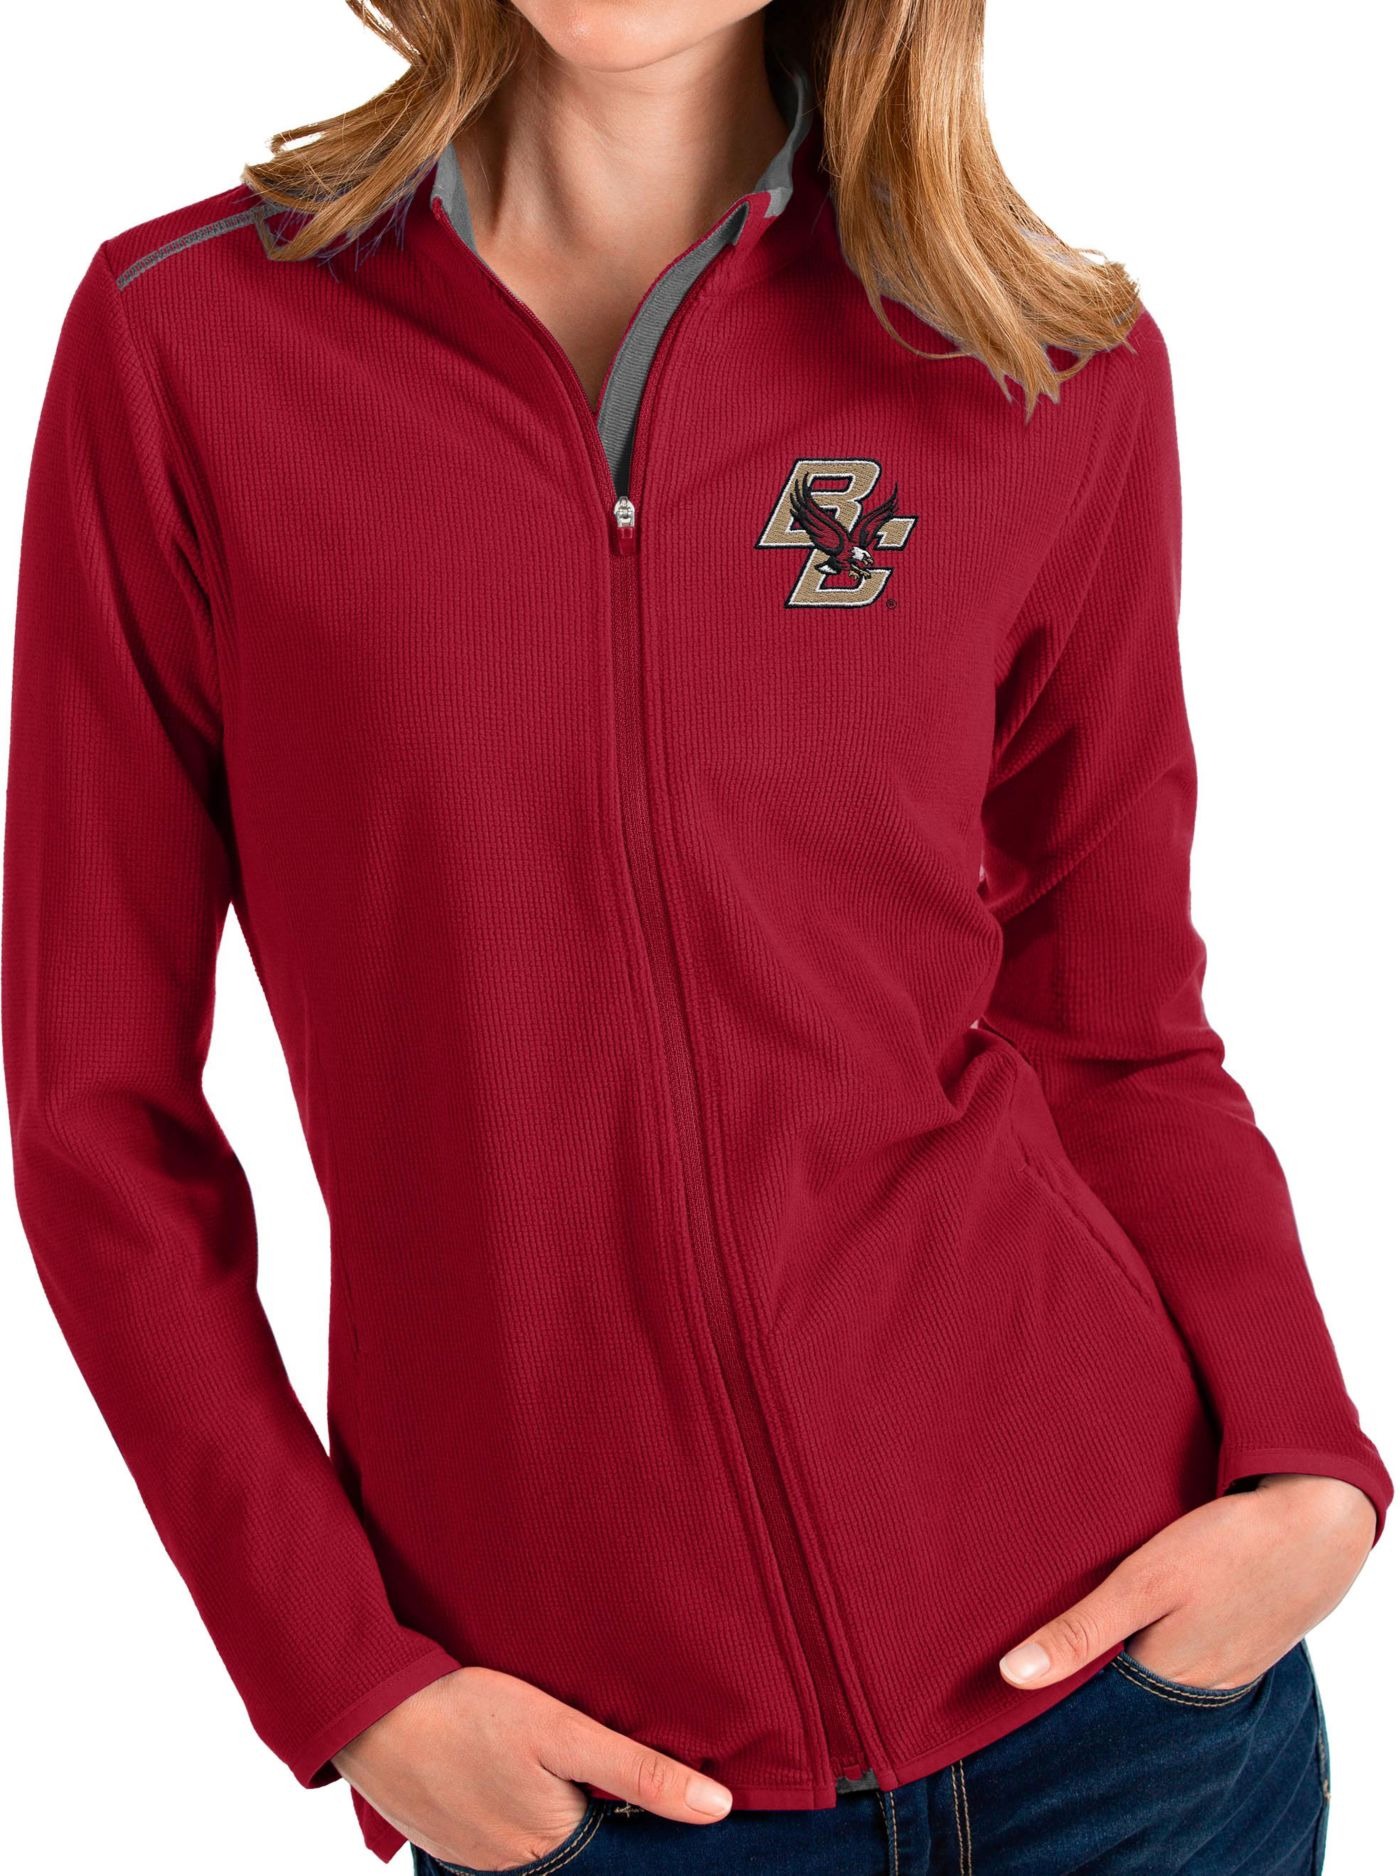 Antigua Women's Boston College Eagles Maroon Glacier Full-Zip Jacket